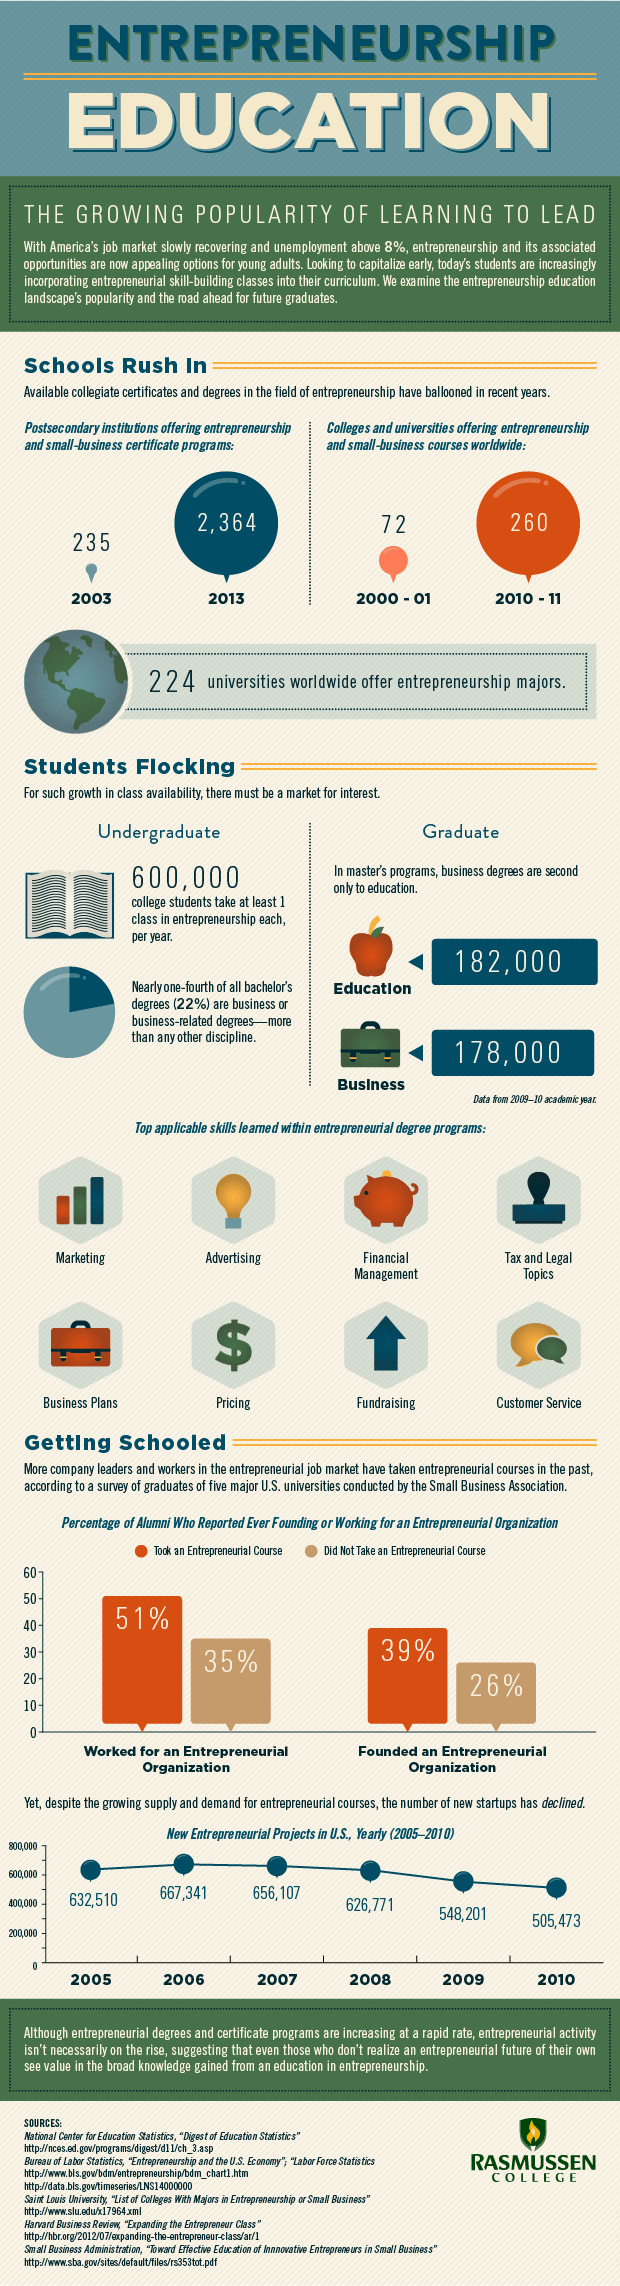 Entrepreneurship-Education-Infographic